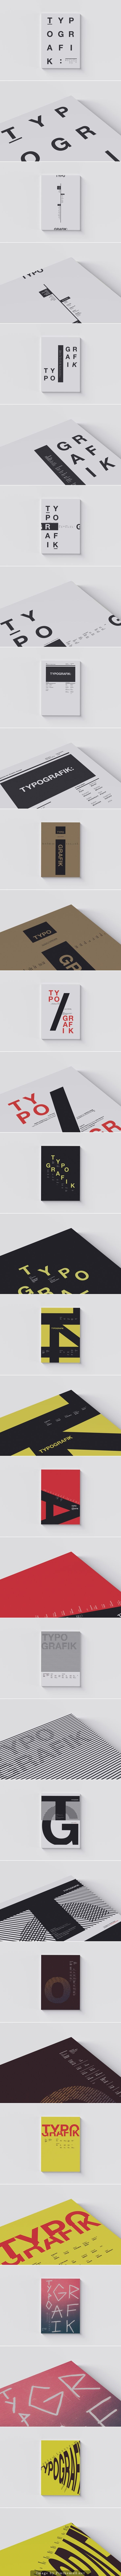 """Using only Helvetica Neue, I created magazine cover layouts for Typografik…"